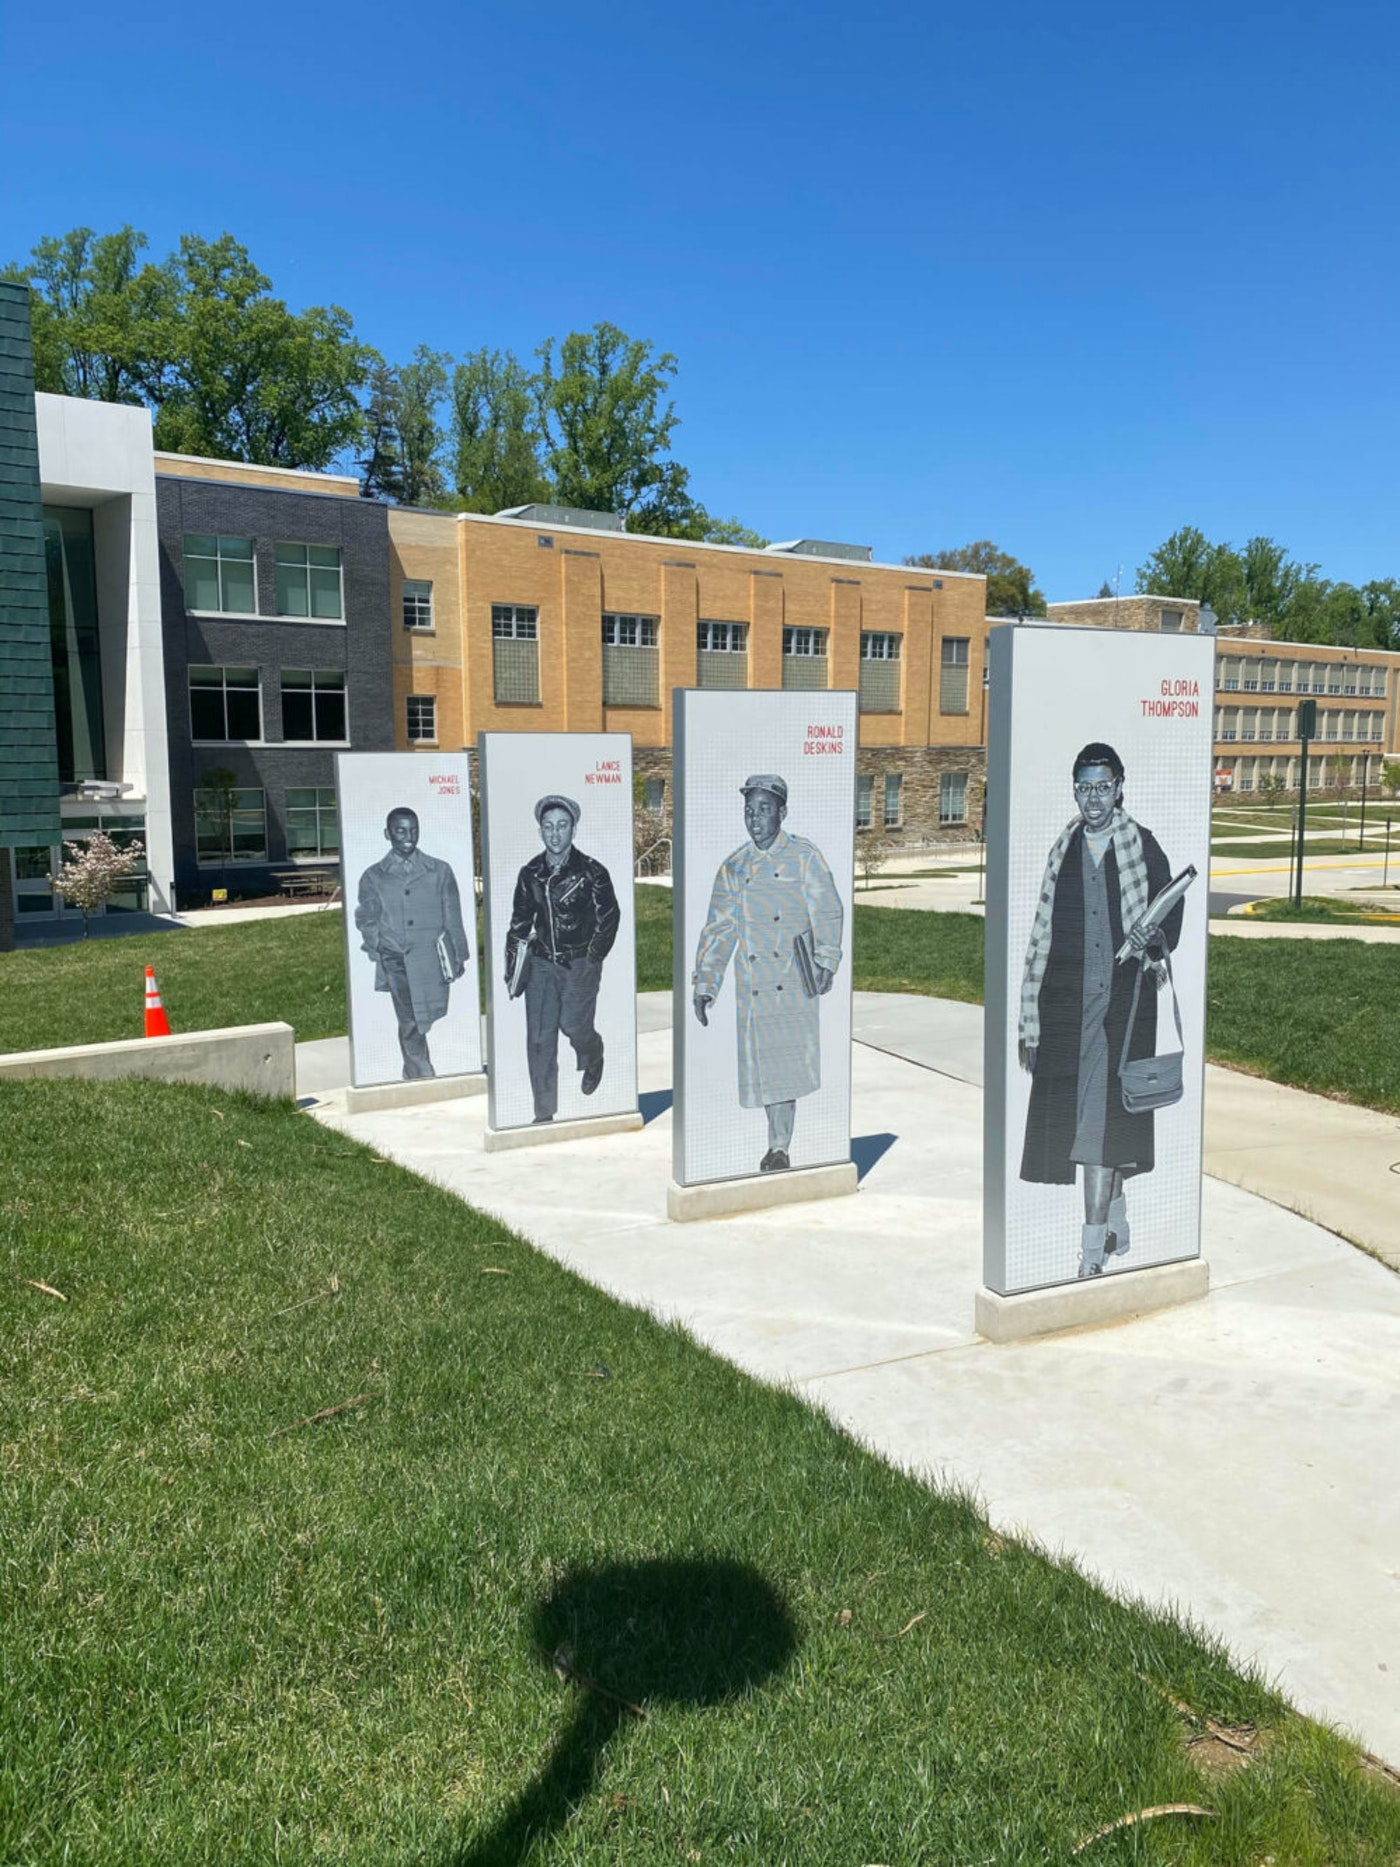 Contributed photo - The Stratford Commemorative Trail in Arlington traces the steps of four brave seventh graders as they desegregated Arlington Public Schools in 1959.